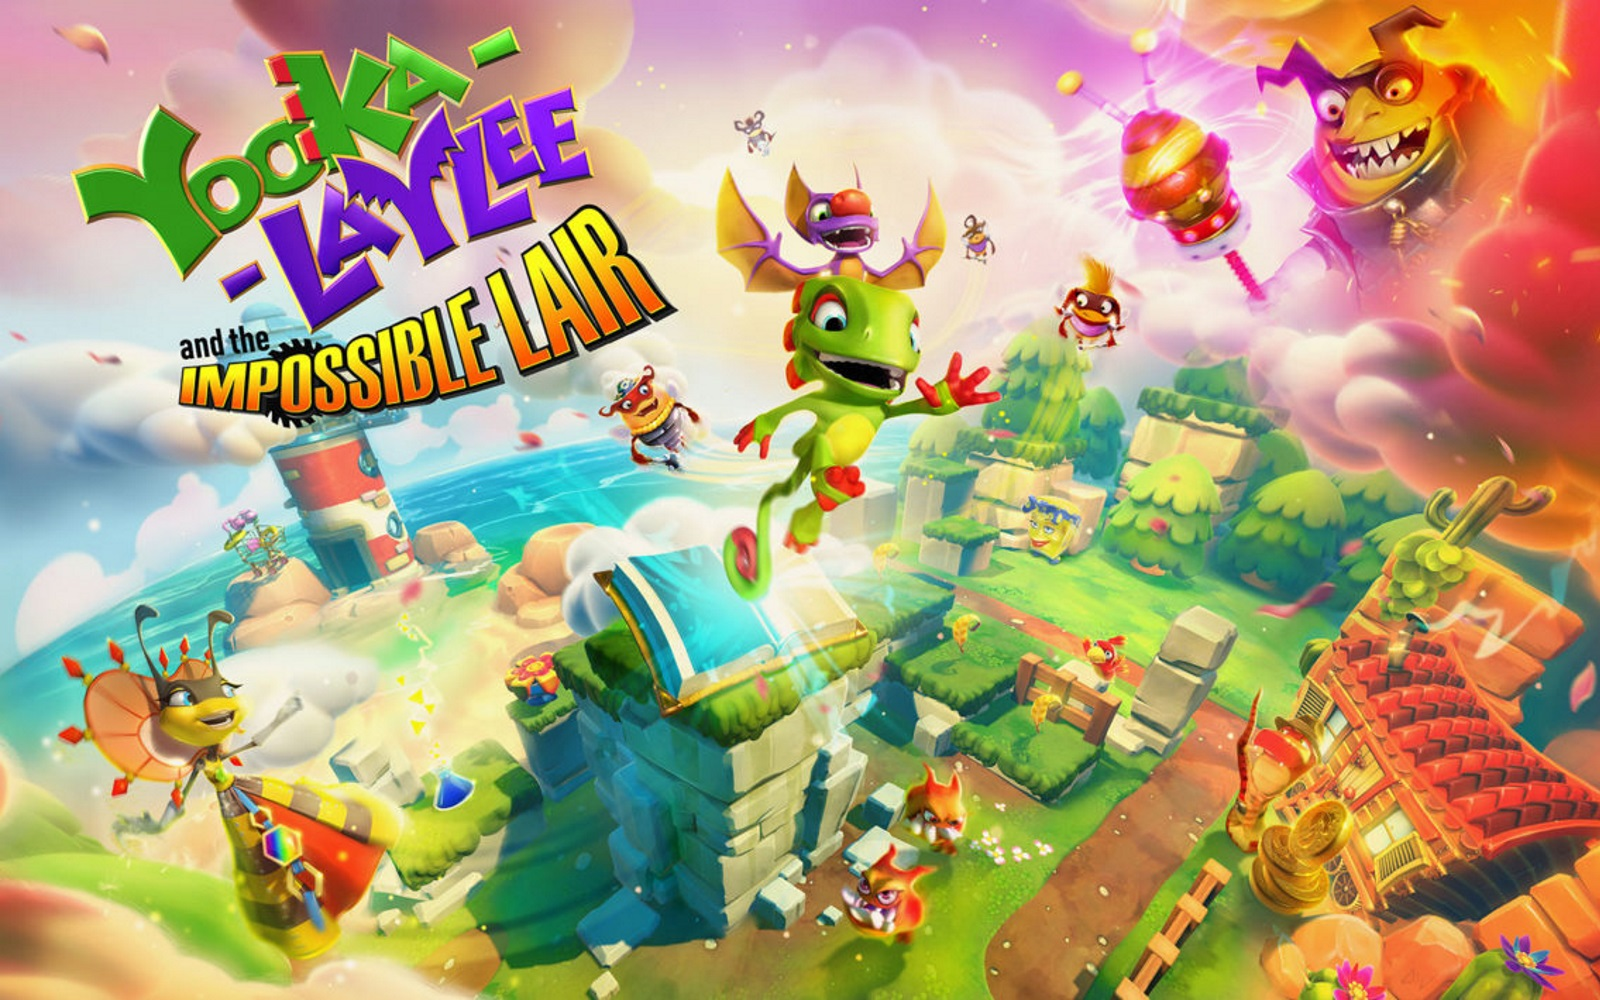 Yooka-Laylee And The Impossible Lair Hands-On And Release Date